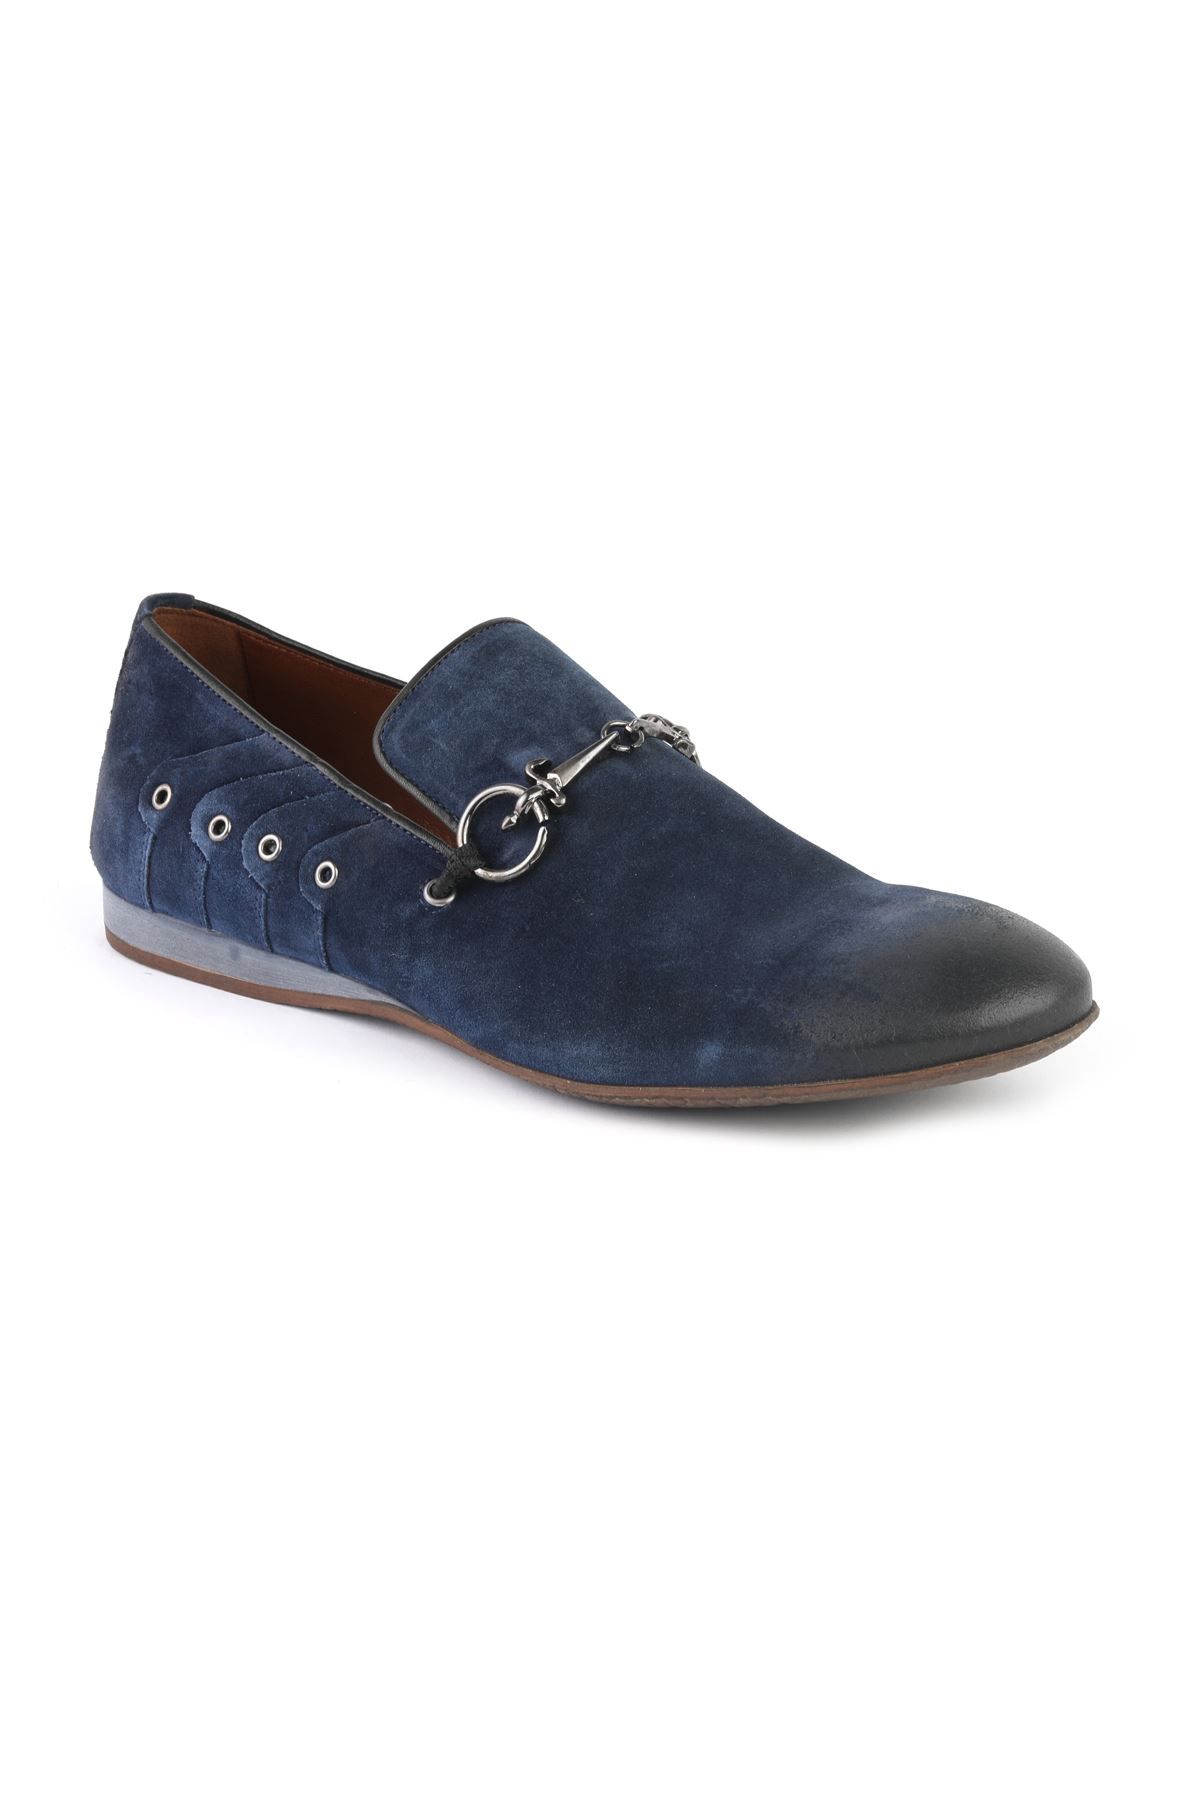 Libero T1115 Navy Blue Loafer Shoes